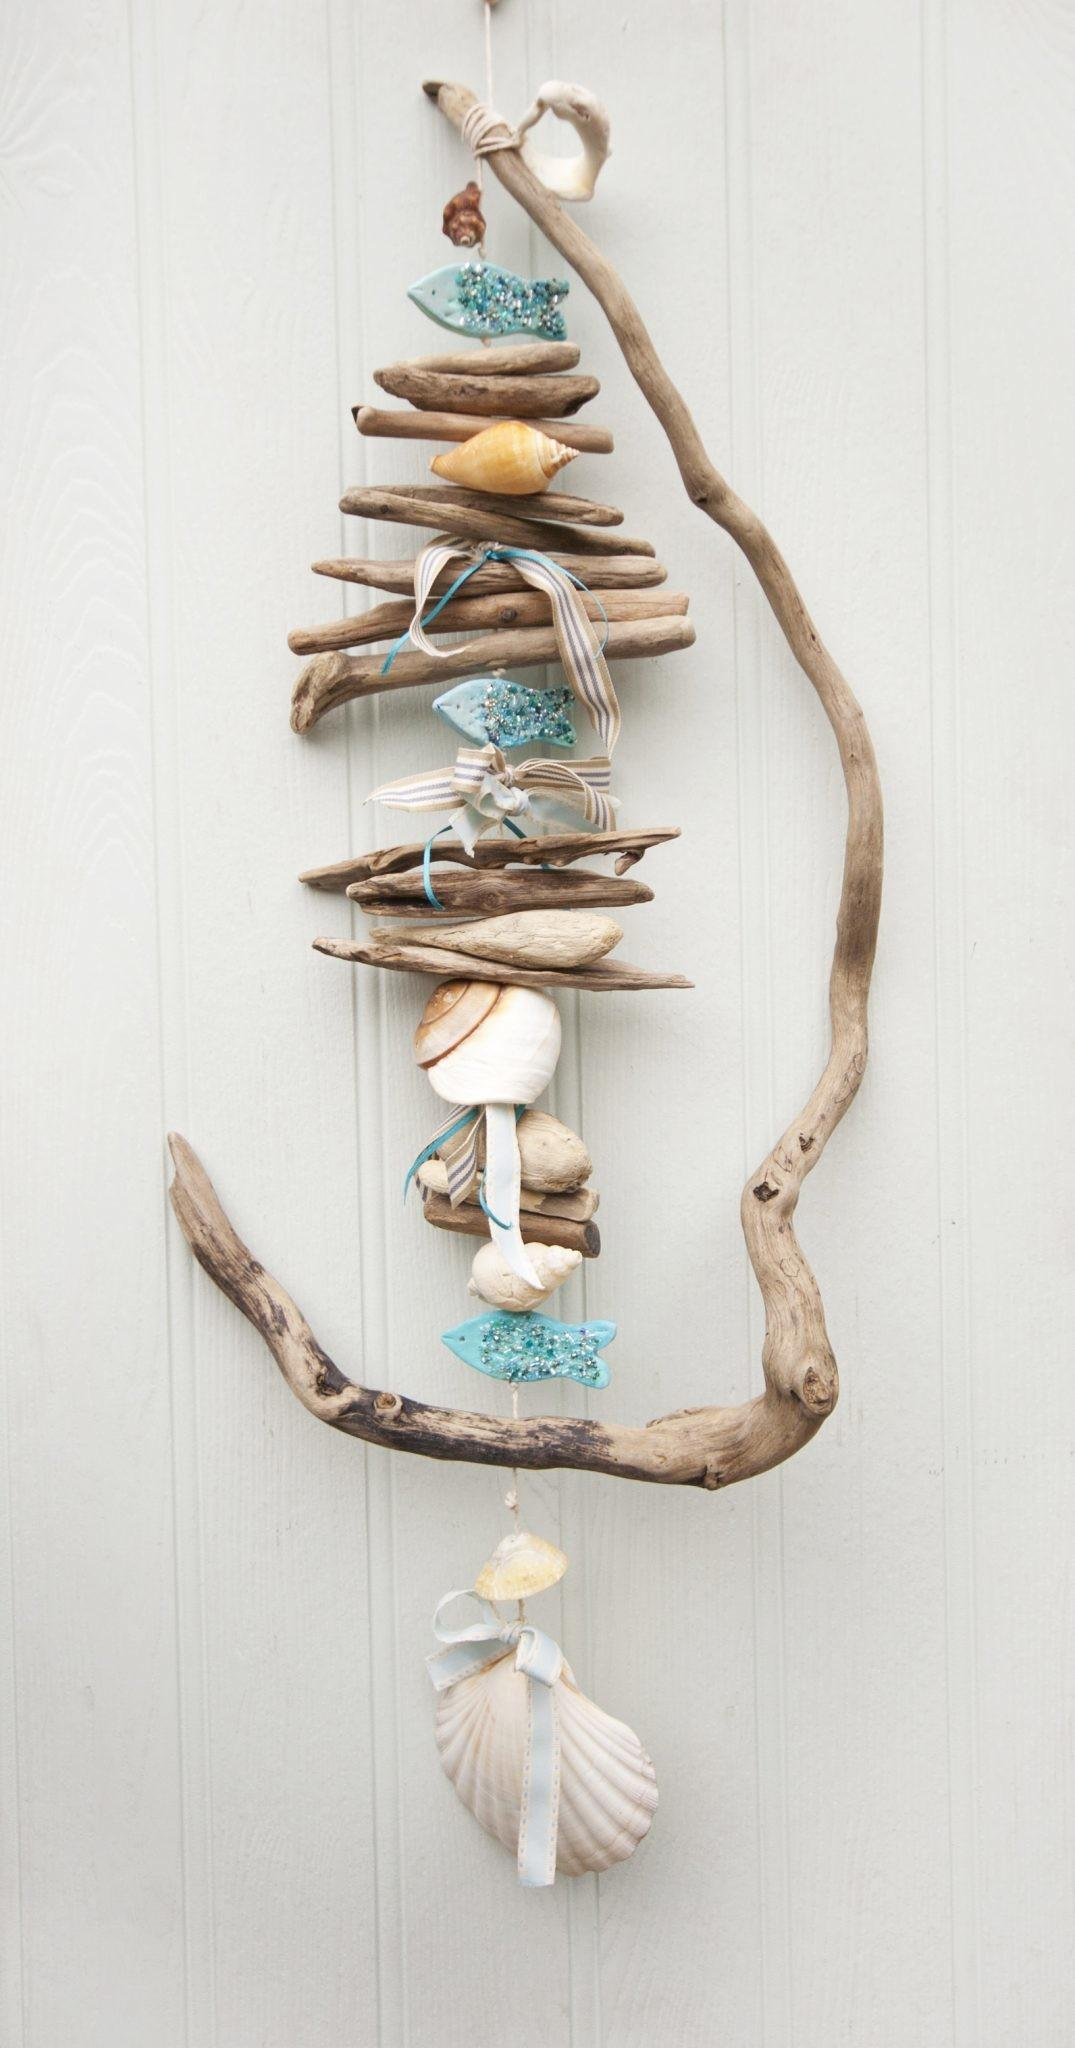 Twisted Driftwood Hanging Coastal Decor Dreaming